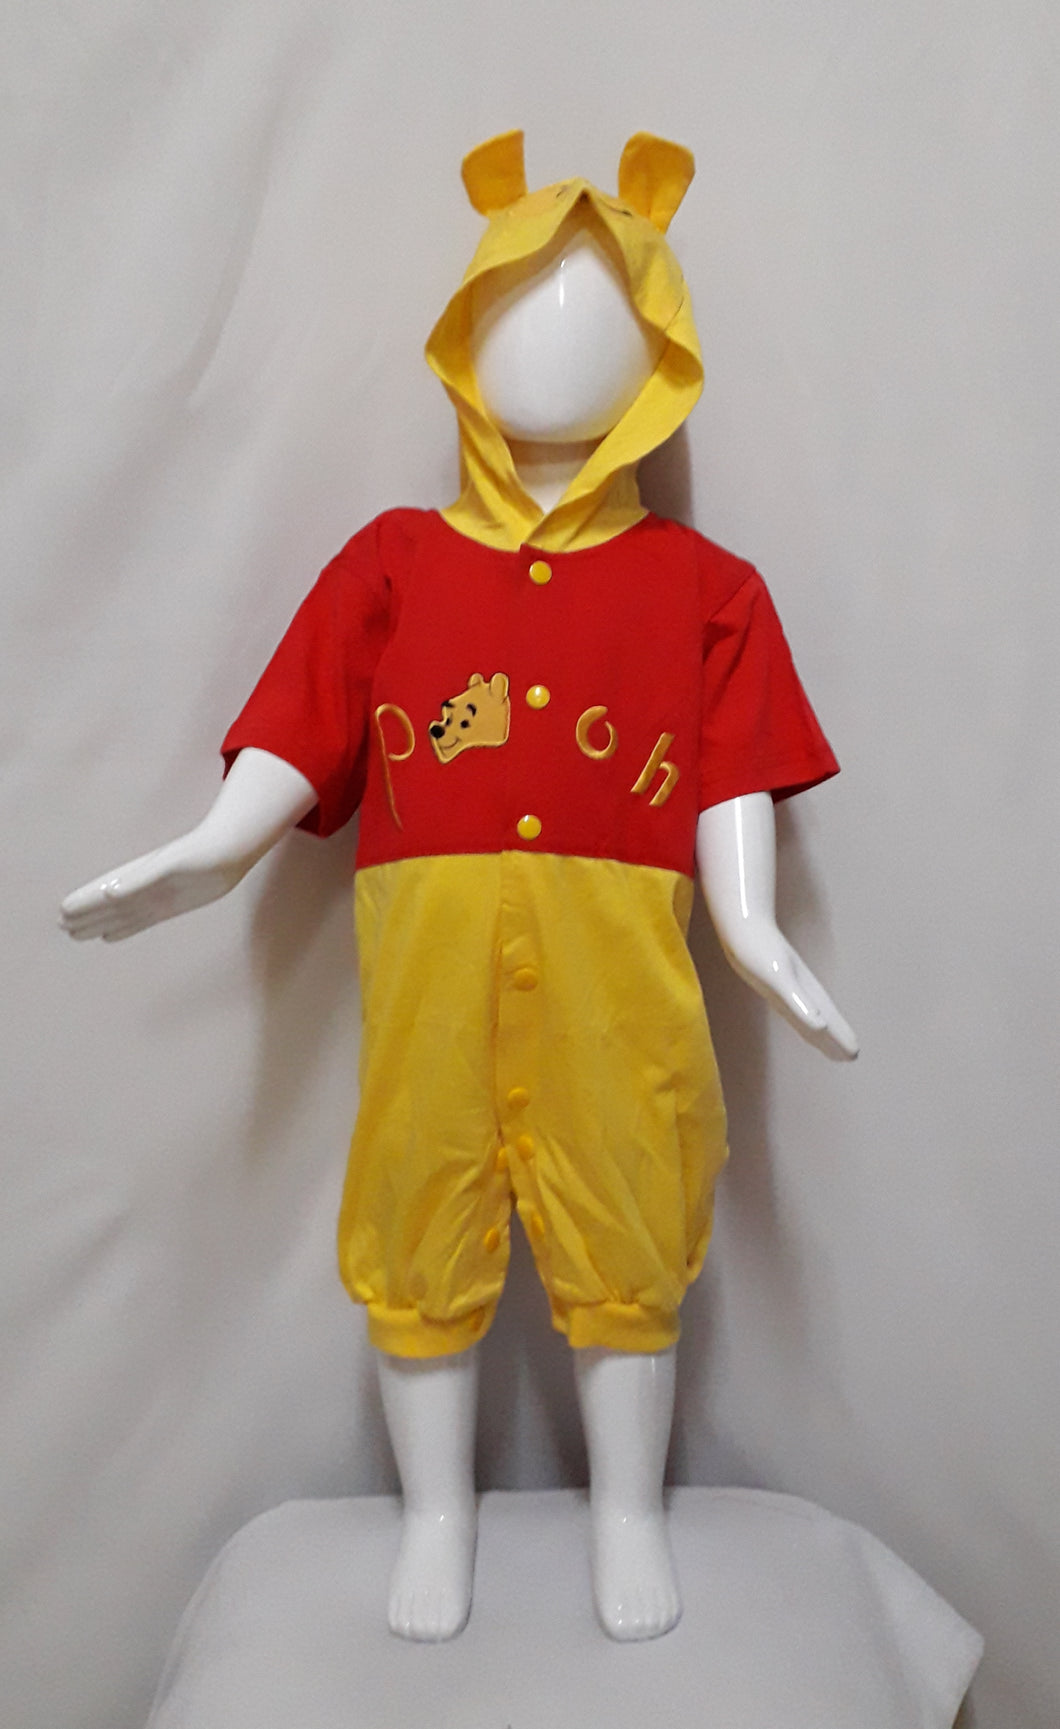 Pooh Costume for 1-2y